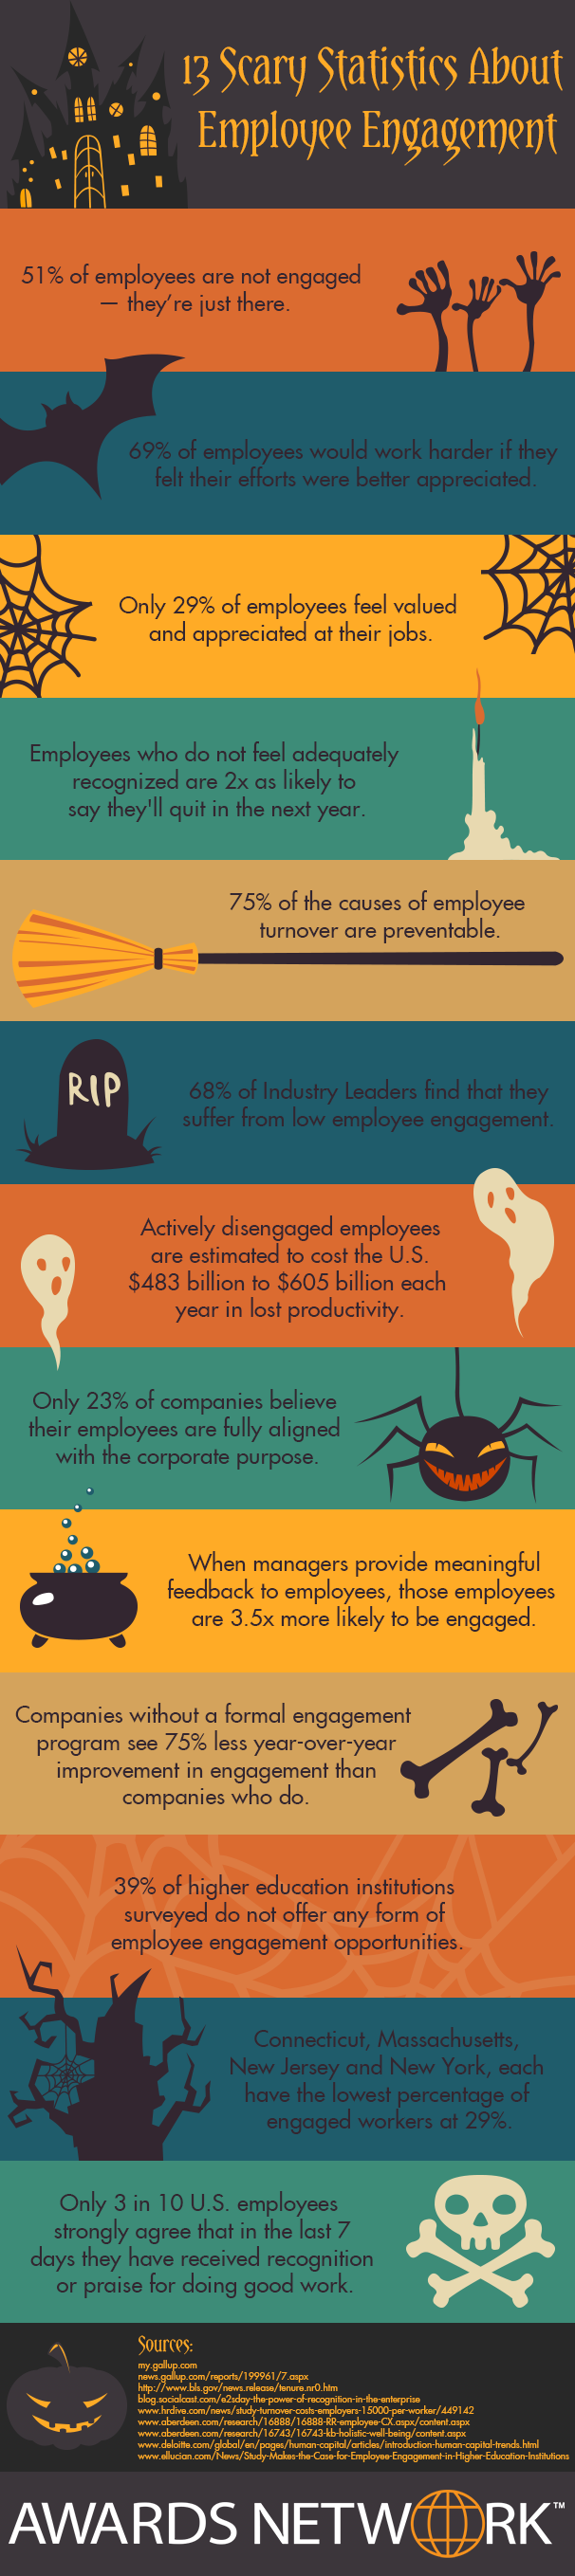 13 Scary Statistics About Employee Engagement - Infographic